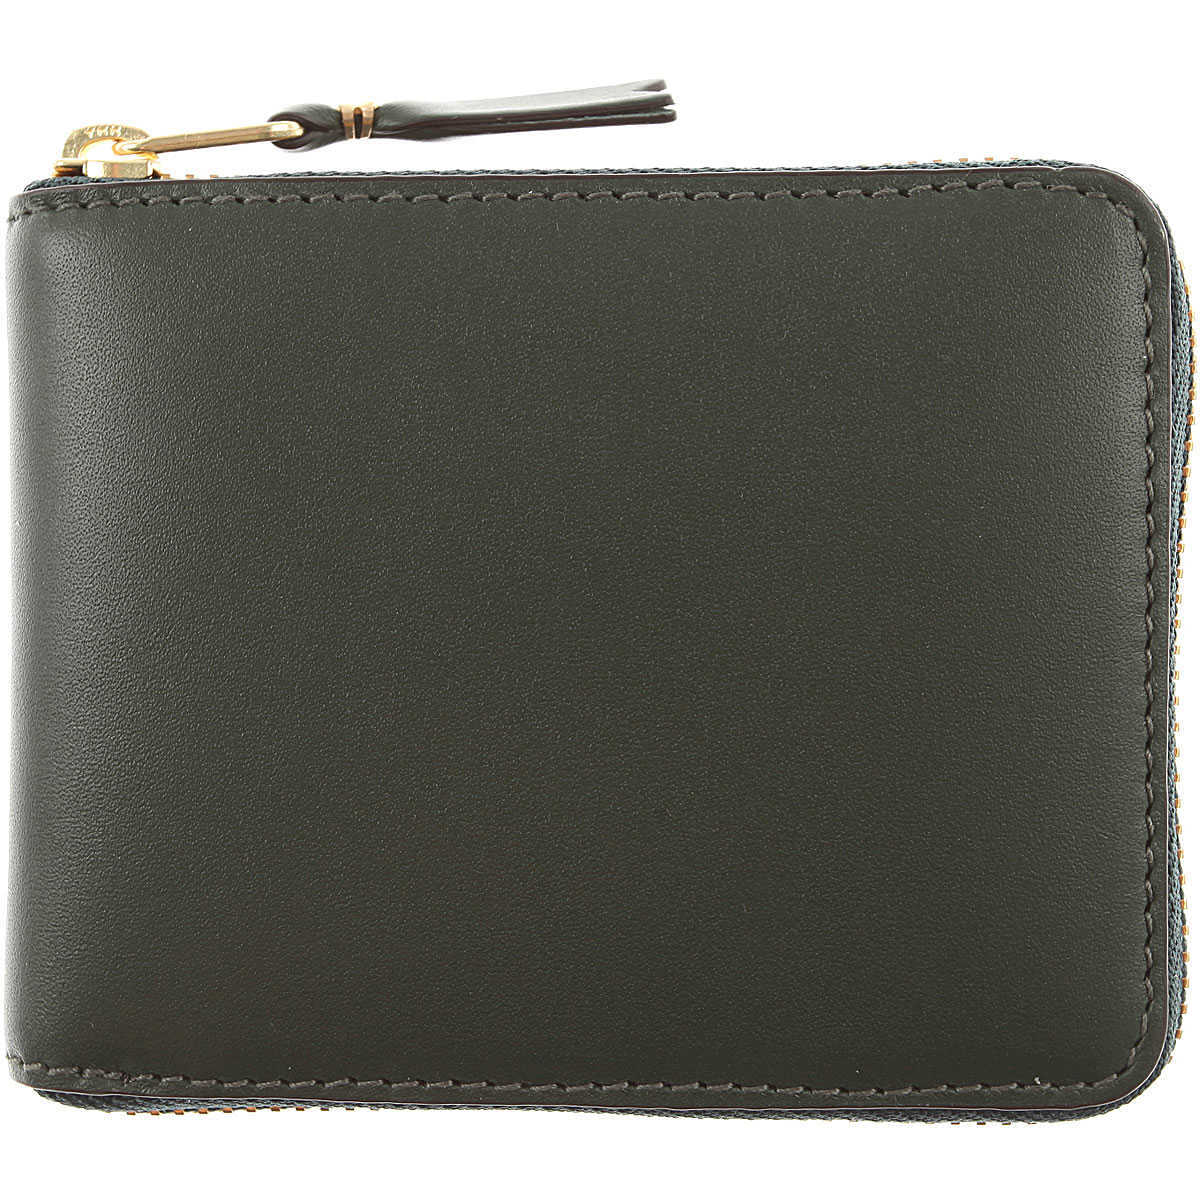 Comme des Garcons Wallet for Women Leather Canada - GOOFASH - Womens WALLETS